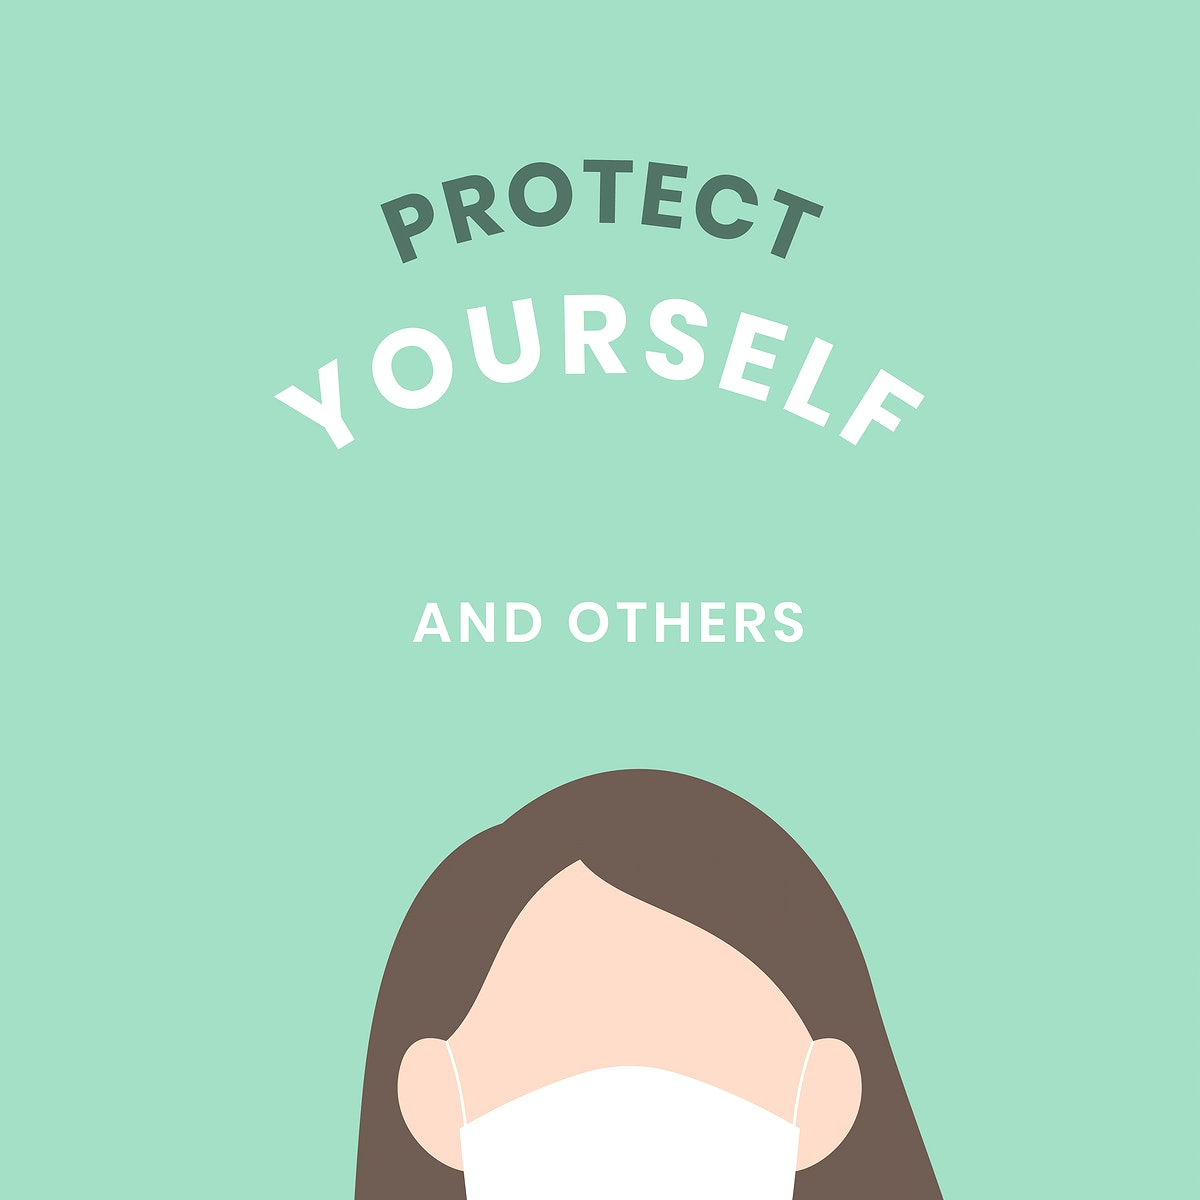 Protect yourself covid-9 awareness vector